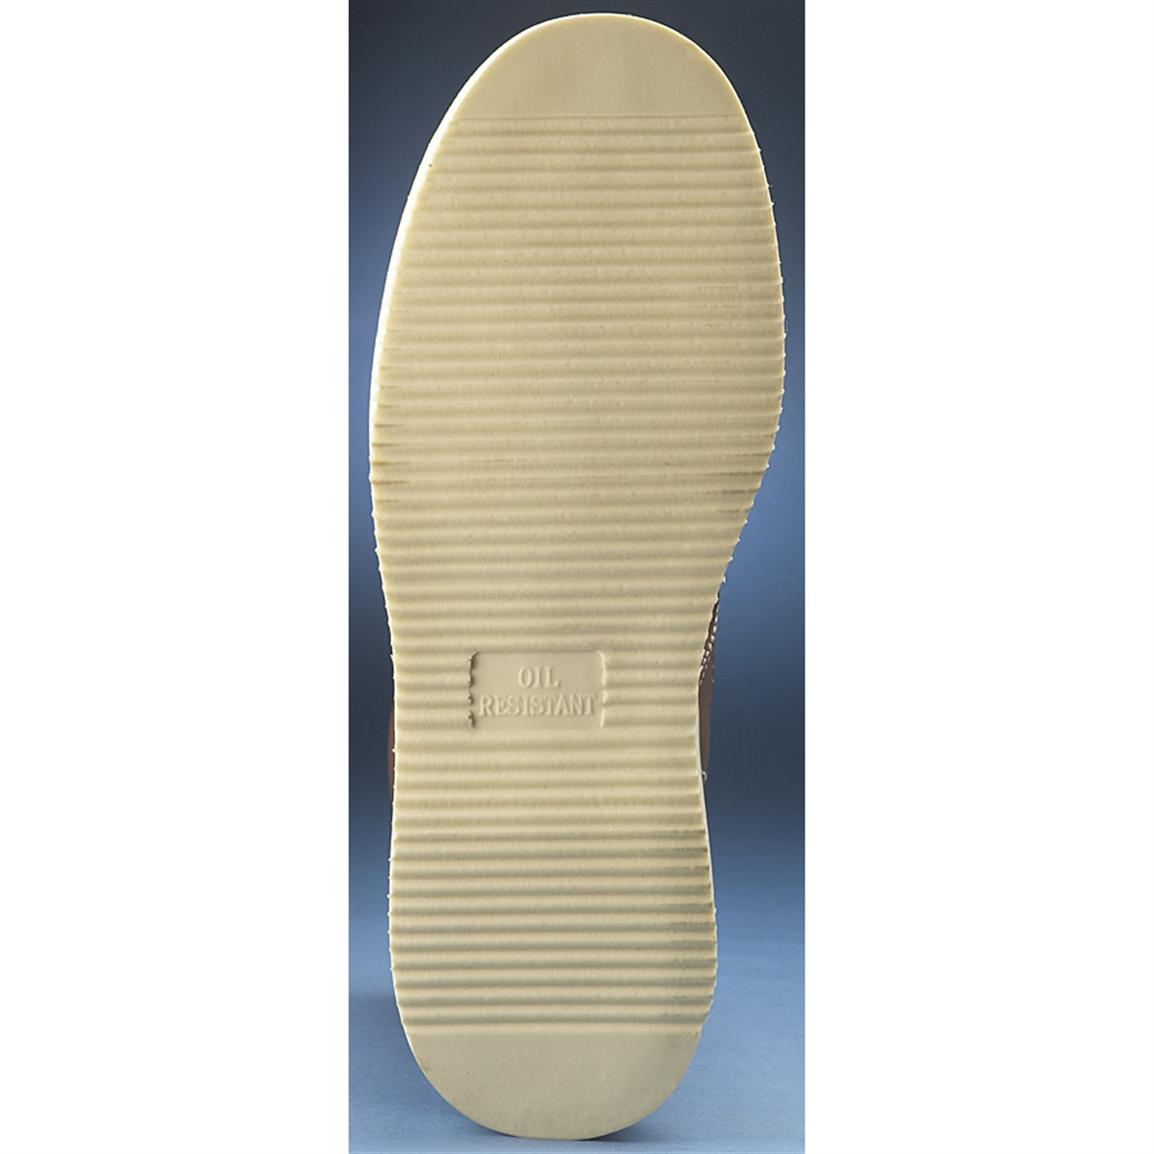 Oil-resistant, wedge-style polyurethane outsole with traction and bounce